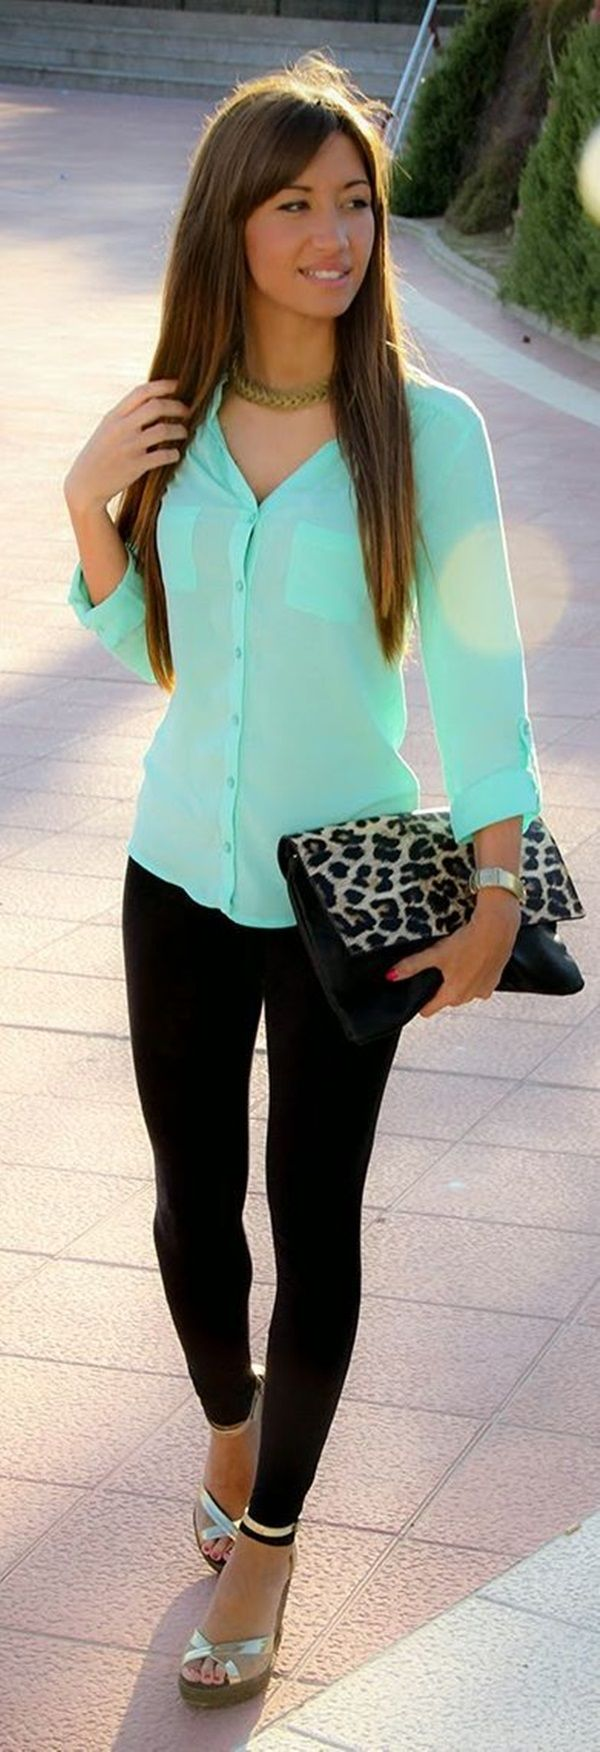 Ideas outfits for women - 40 Lovely Holiday Looks Outfits For Women